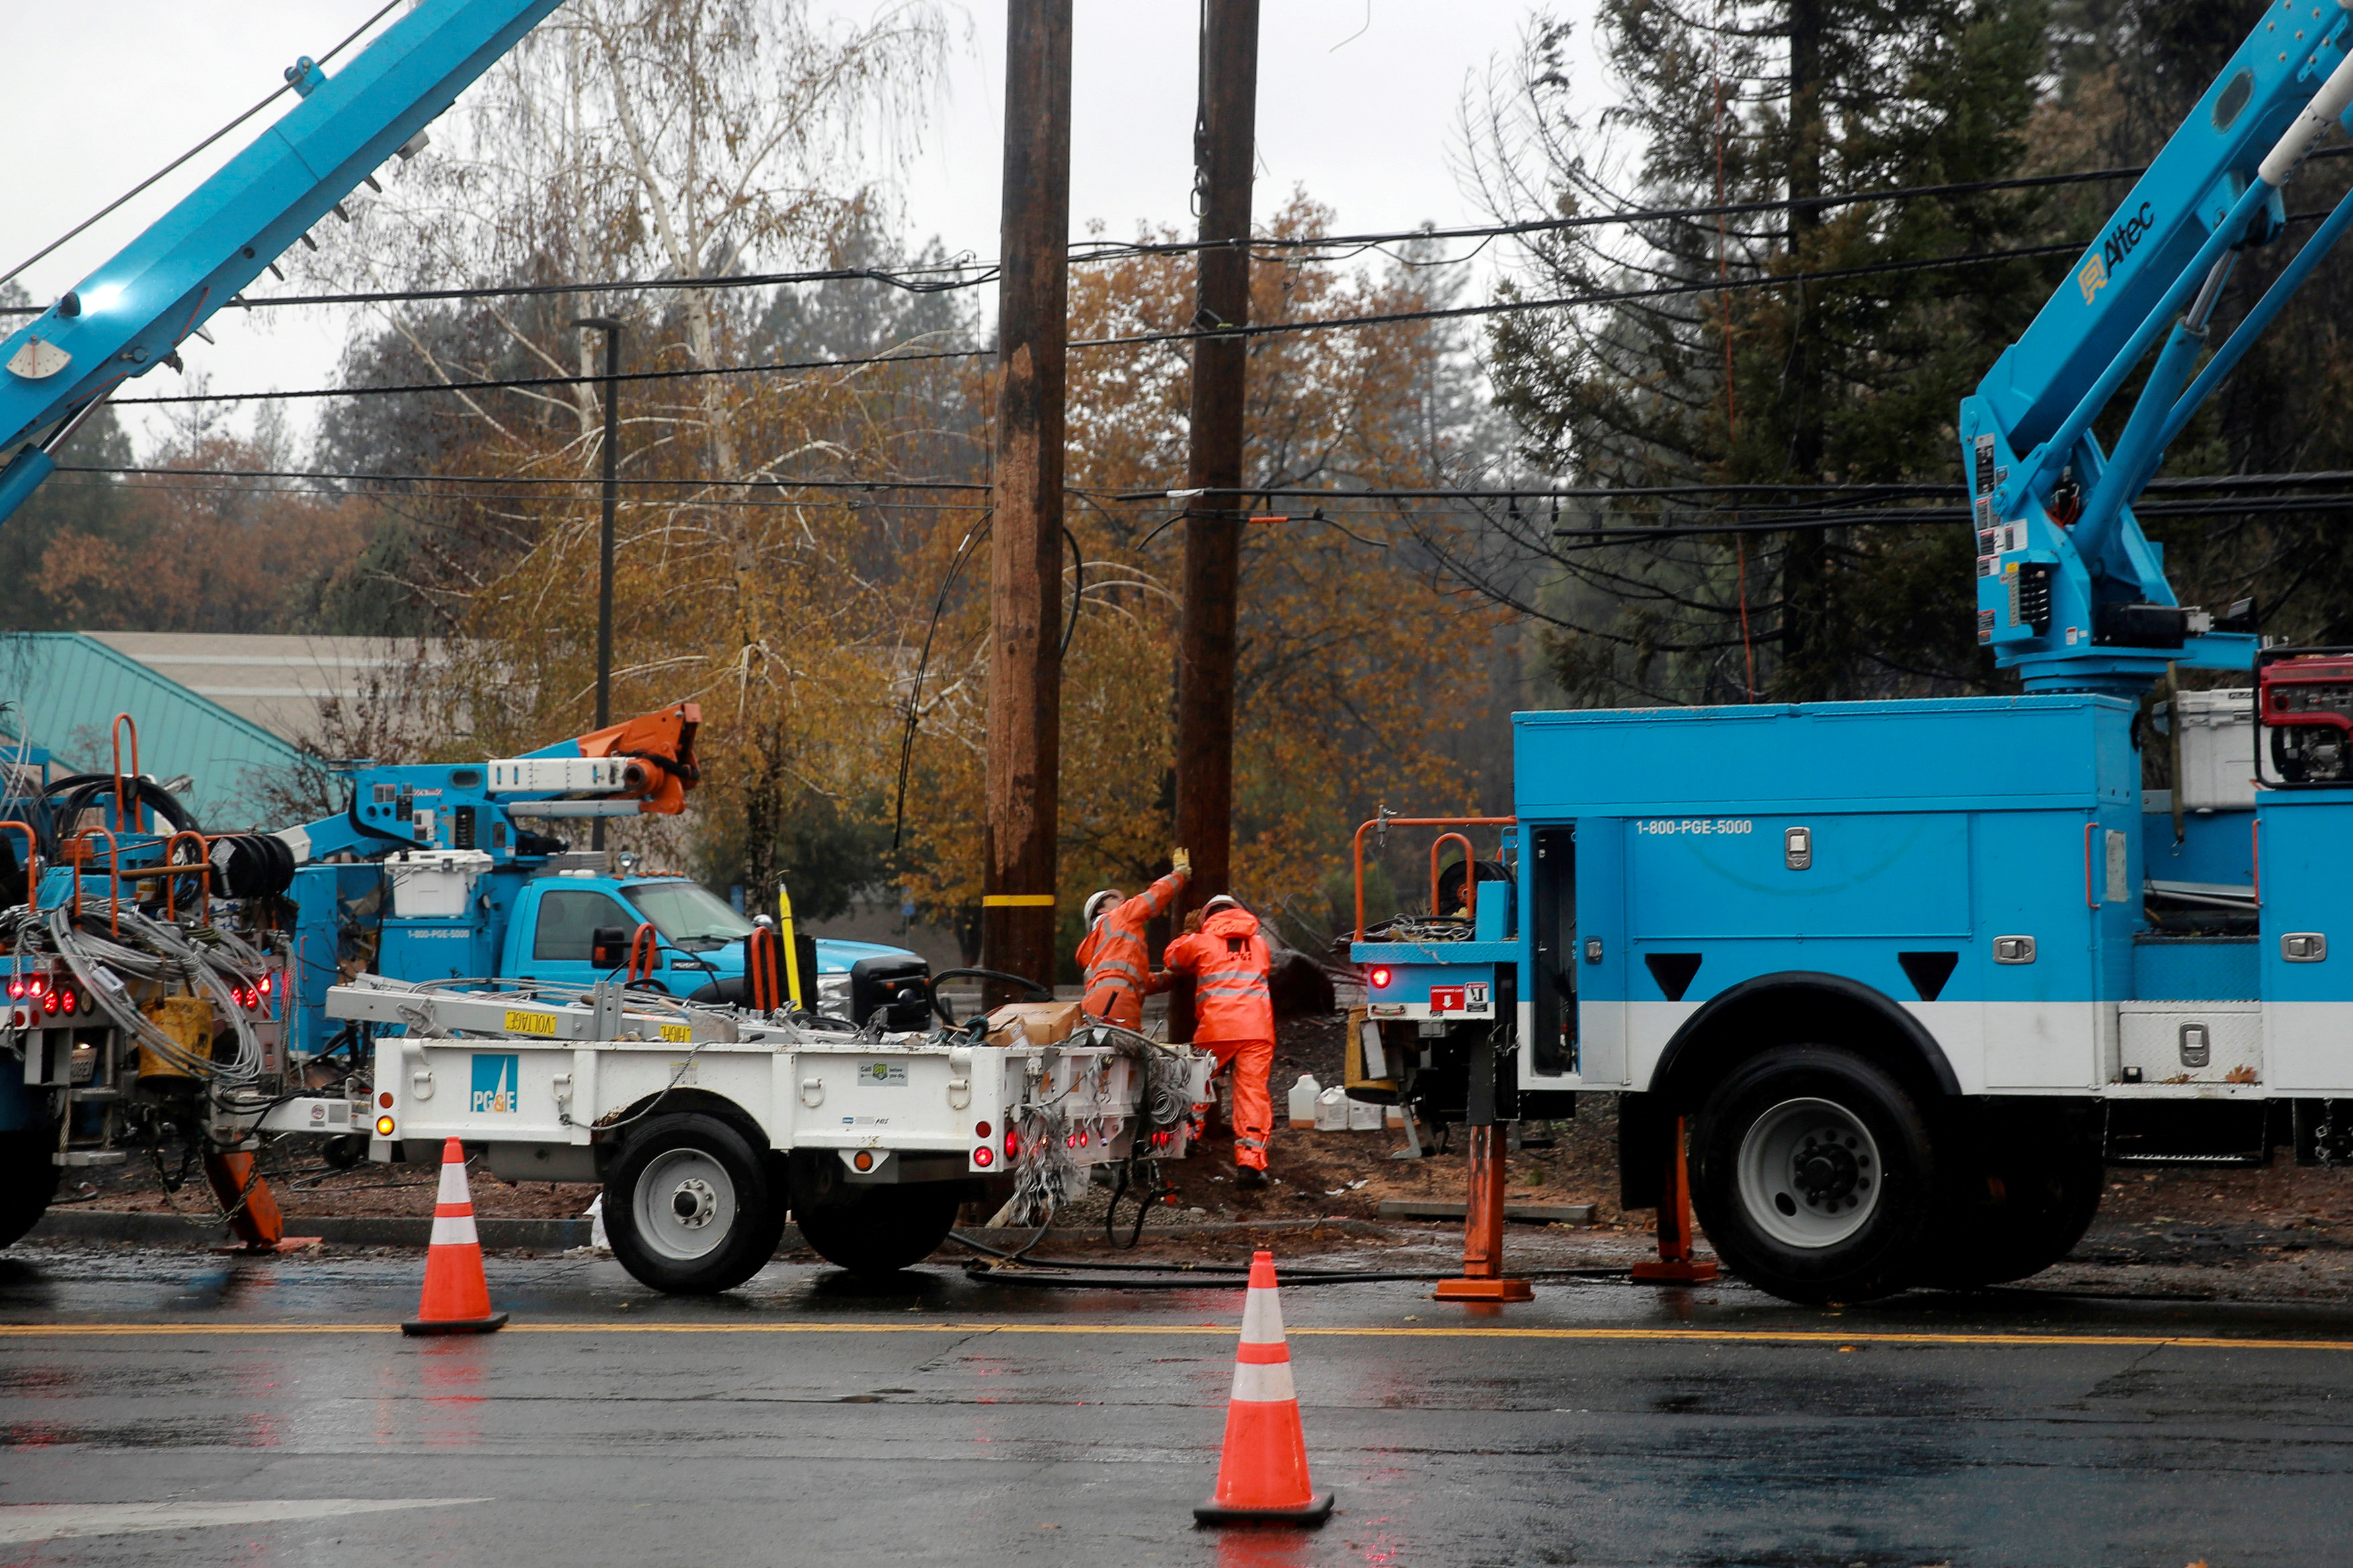 PG&E works on power lines to repair damage caused by the Camp Fire in Paradise, California, U.S. November 21, 2018. REUTERS/Elijah Nouvelage/File Photo